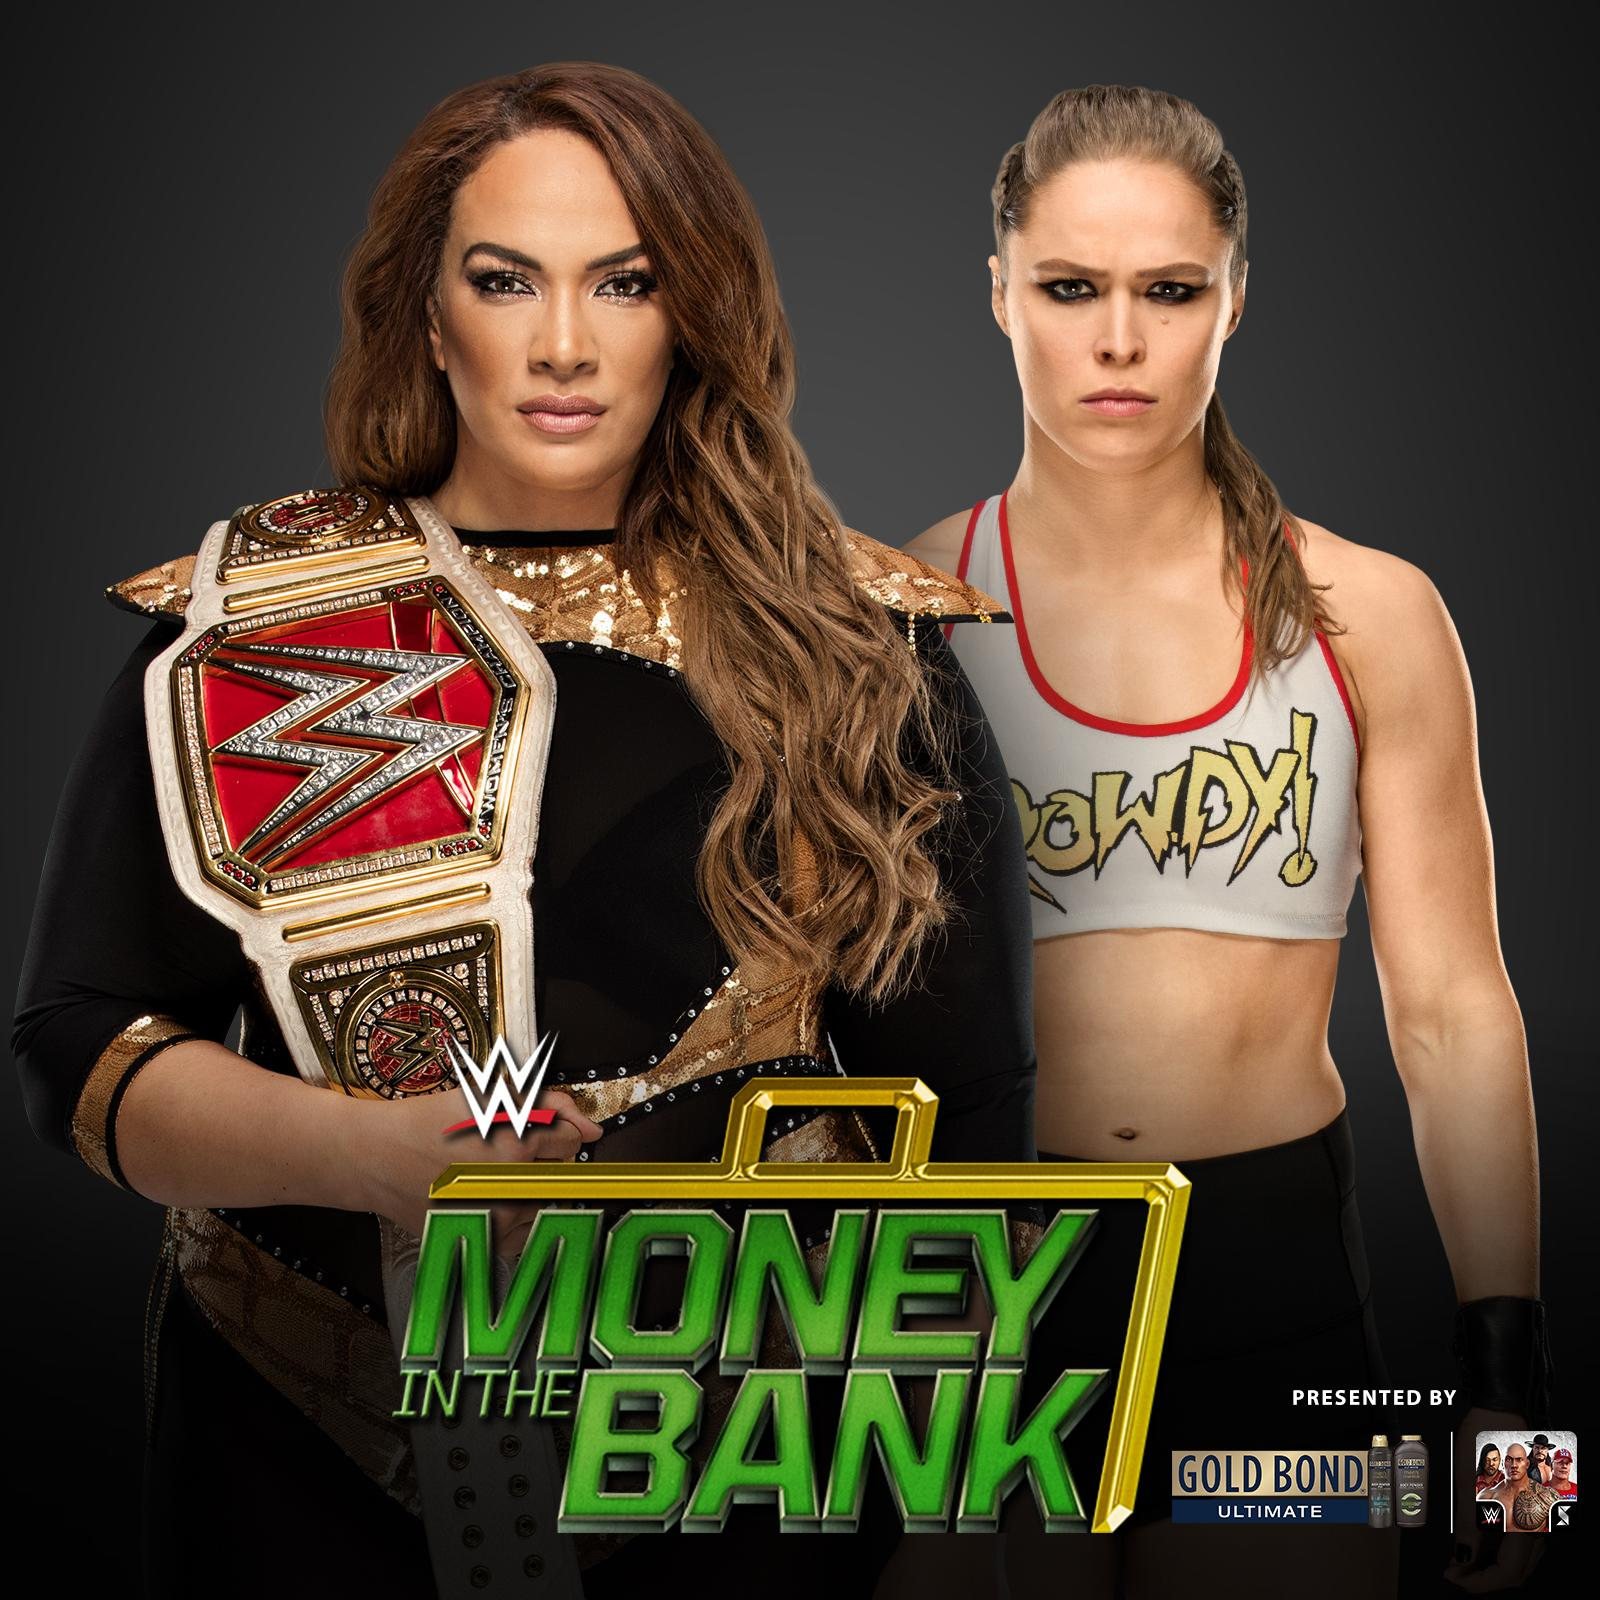 Will @RondaRousey be able to put @NiaJaxWWE in an armbar tonight at @WWE #MITB? https://t.co/PRqrUgK2PD https://t.co/O4LeFvEnaw